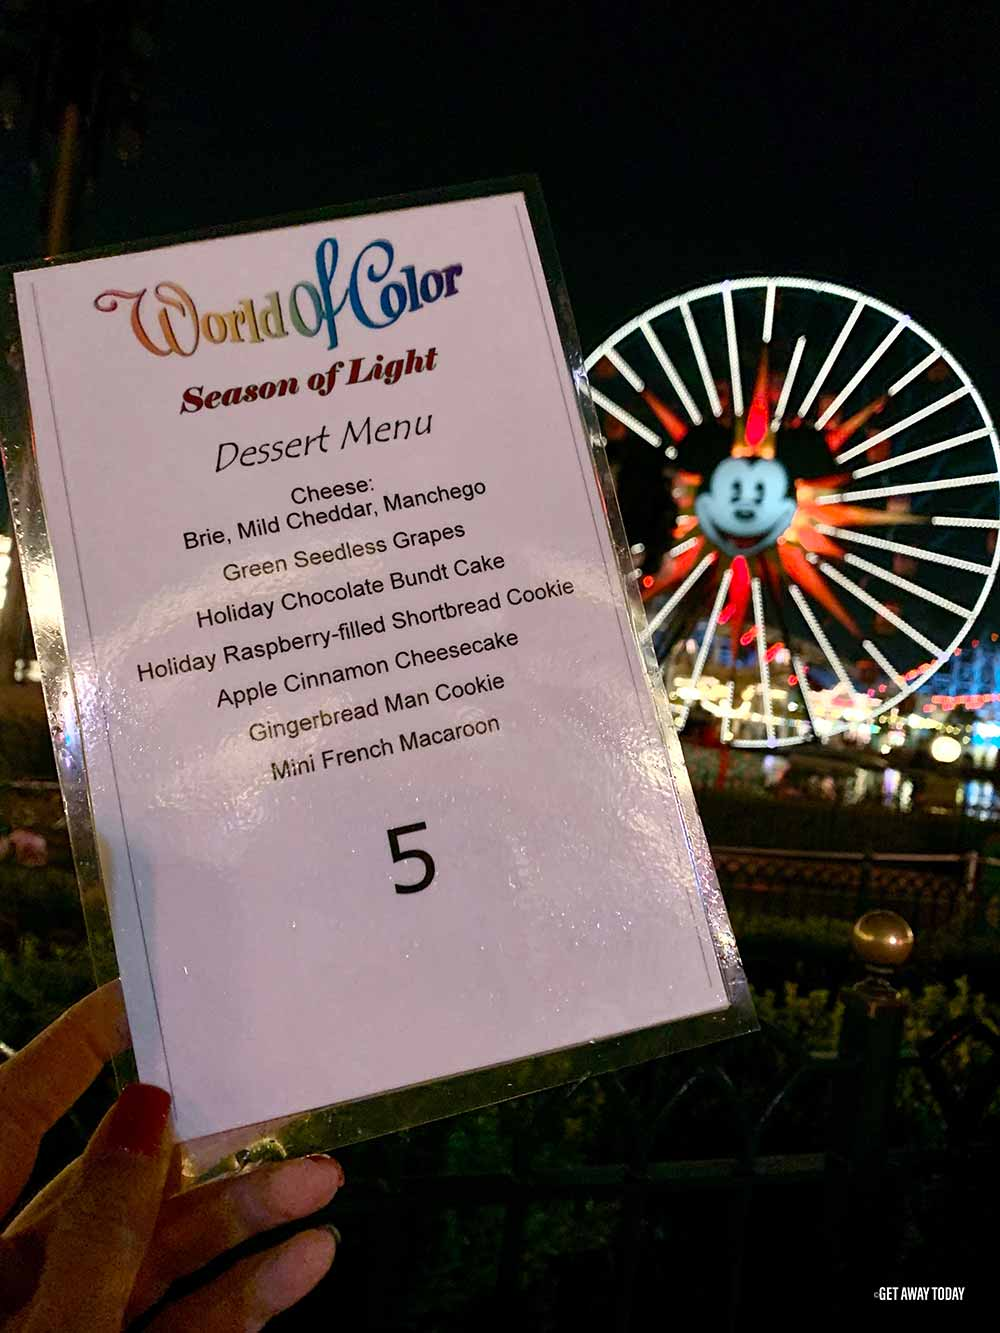 World of Color Dessert Party Menu and Wheel